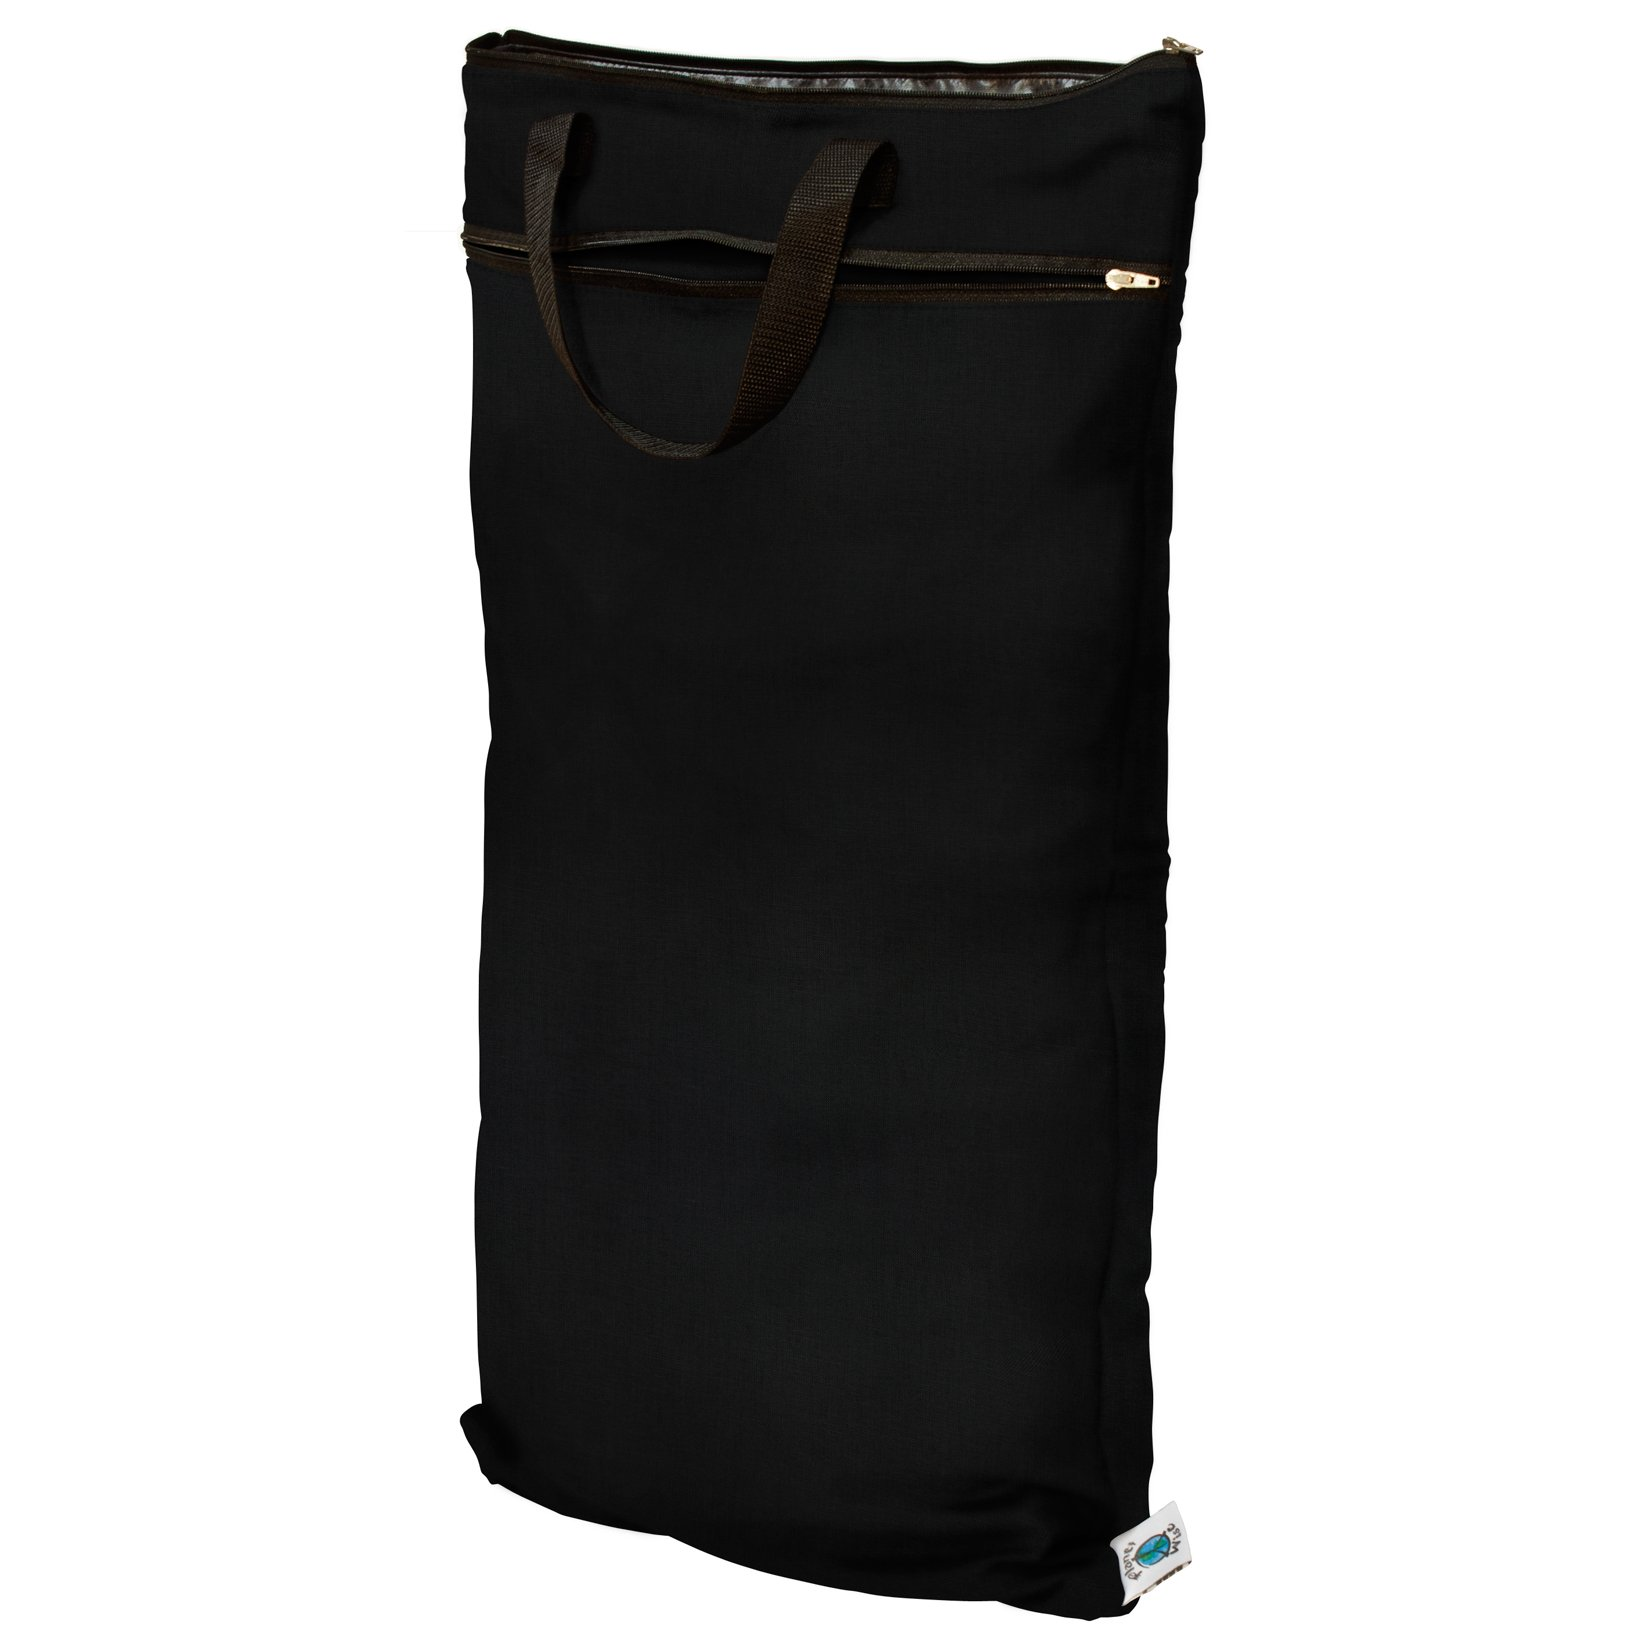 Planet Wise Hanging Wet/Dry Bag, Black